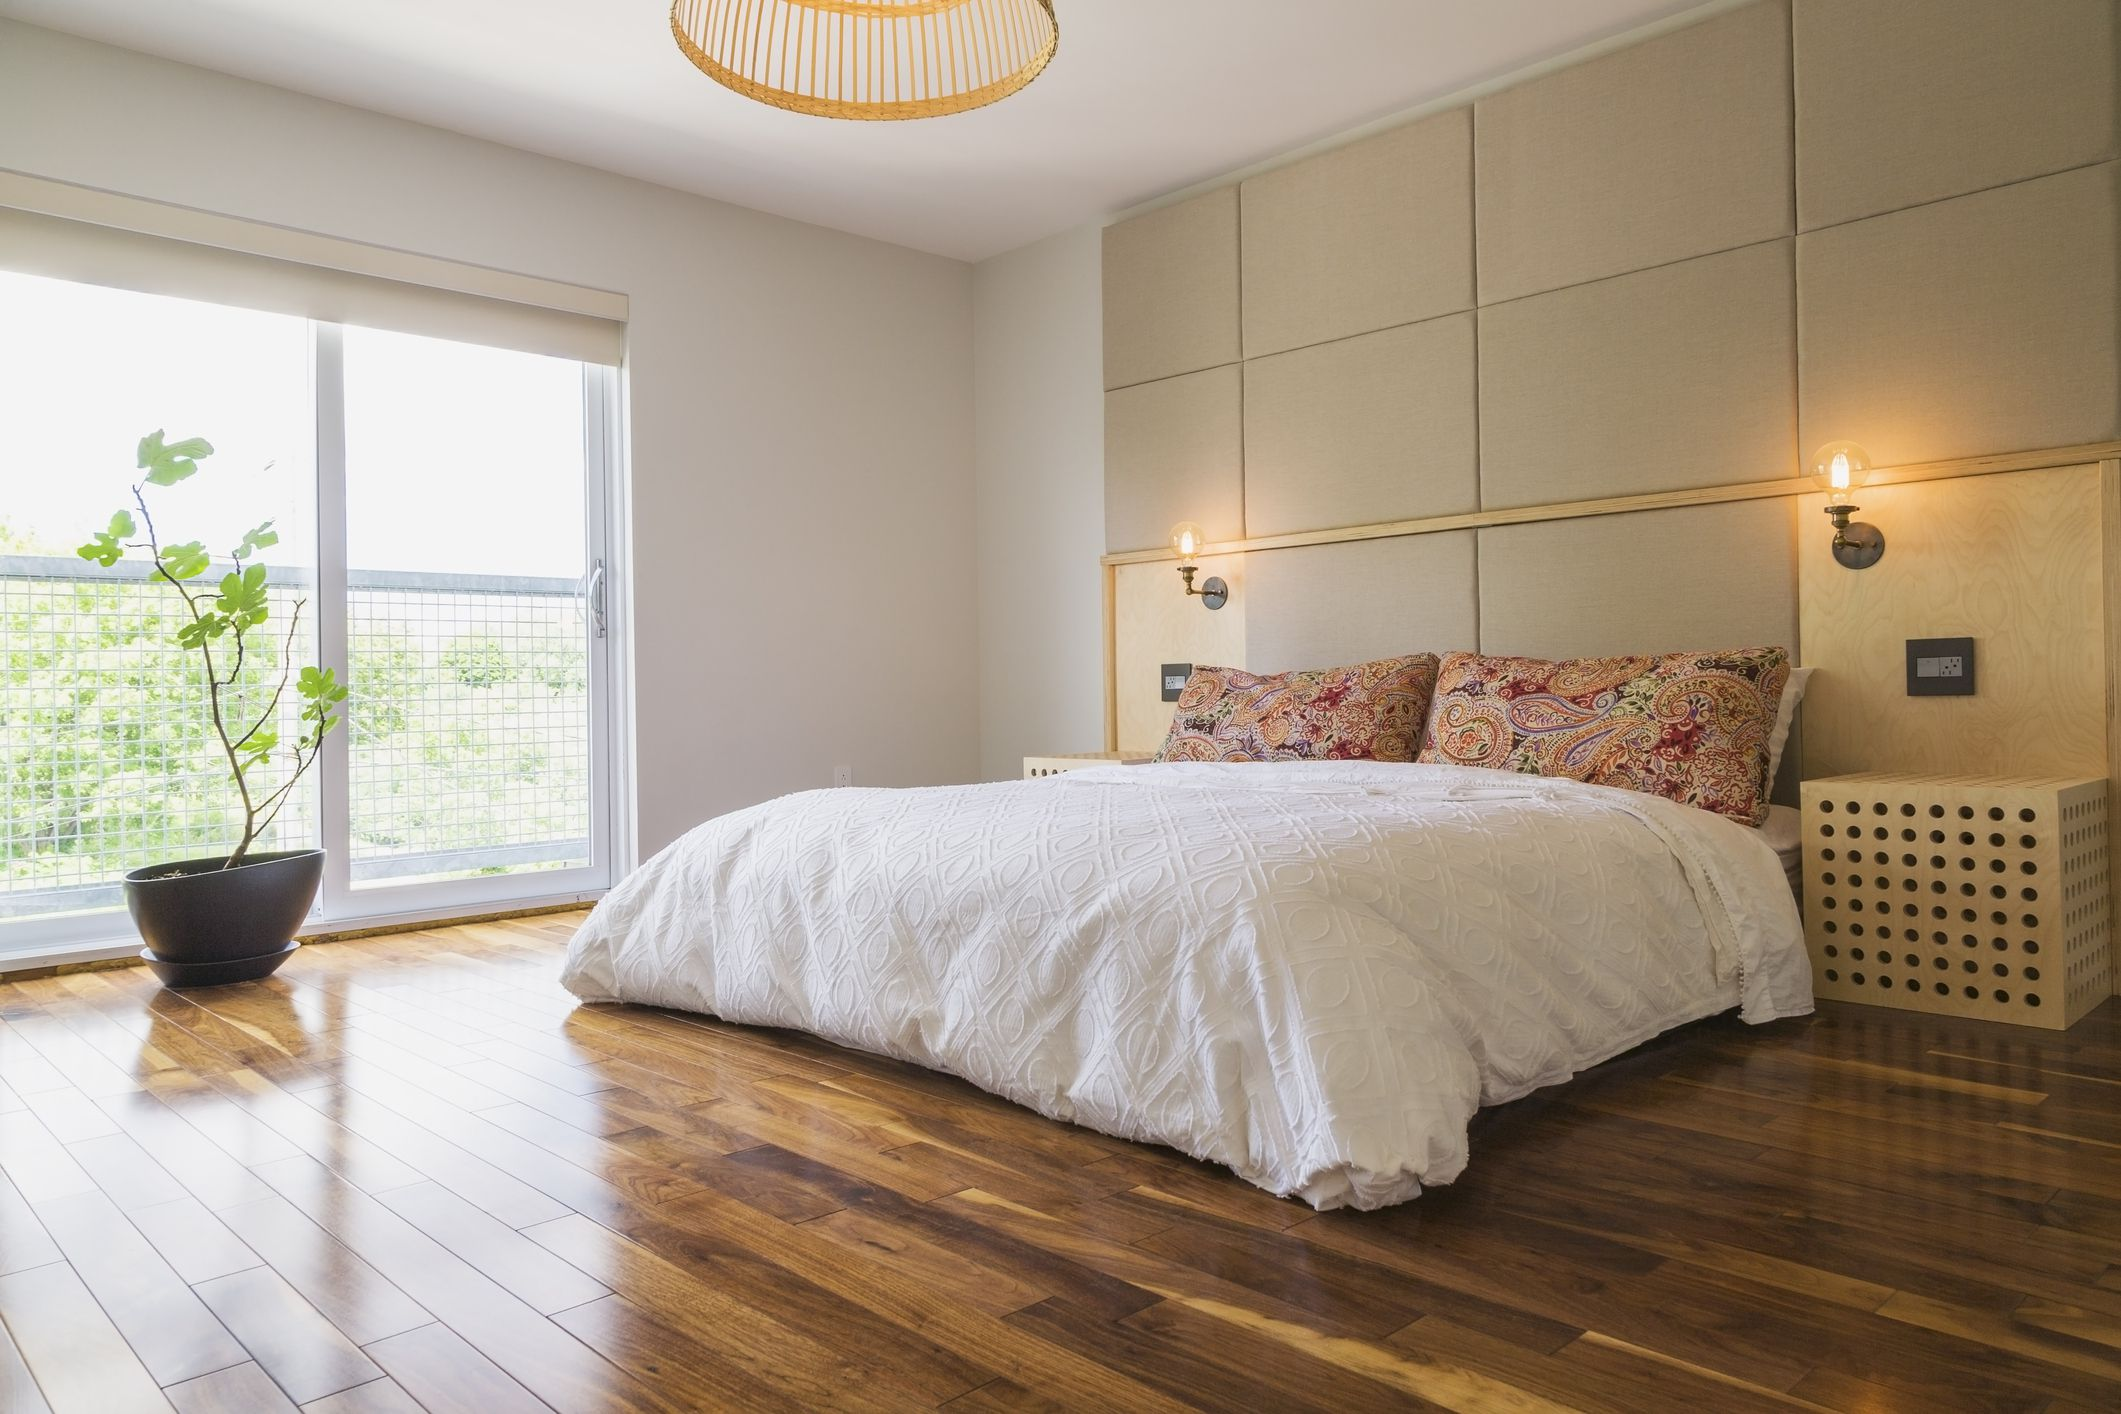 how to feng shui your bedroom 20305 | gettyimages 702551757 5ae247c68e1b6e0037c97e4e